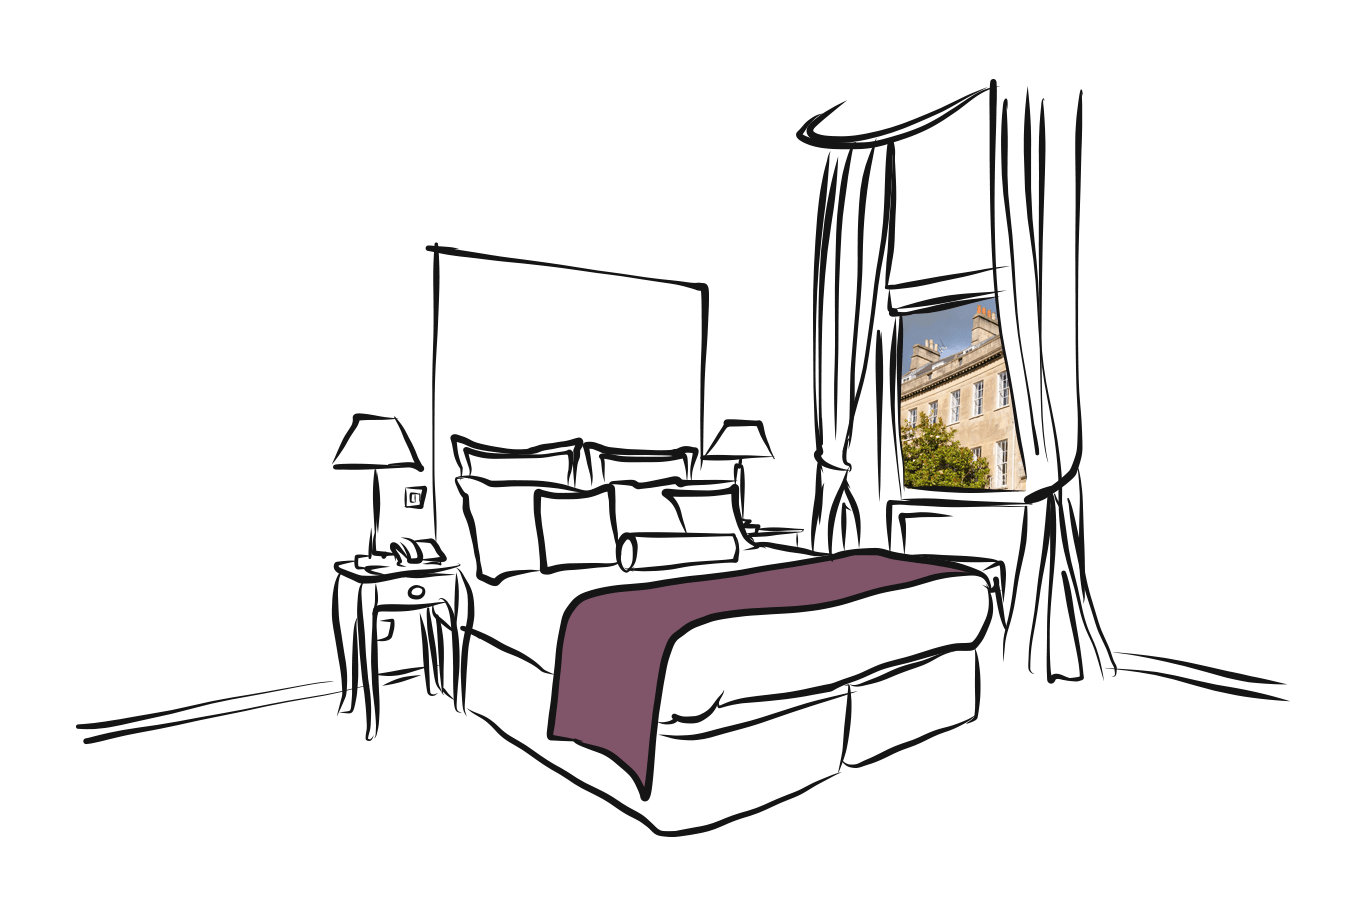 b&b insurance illustration of accomodation with view onto historical building